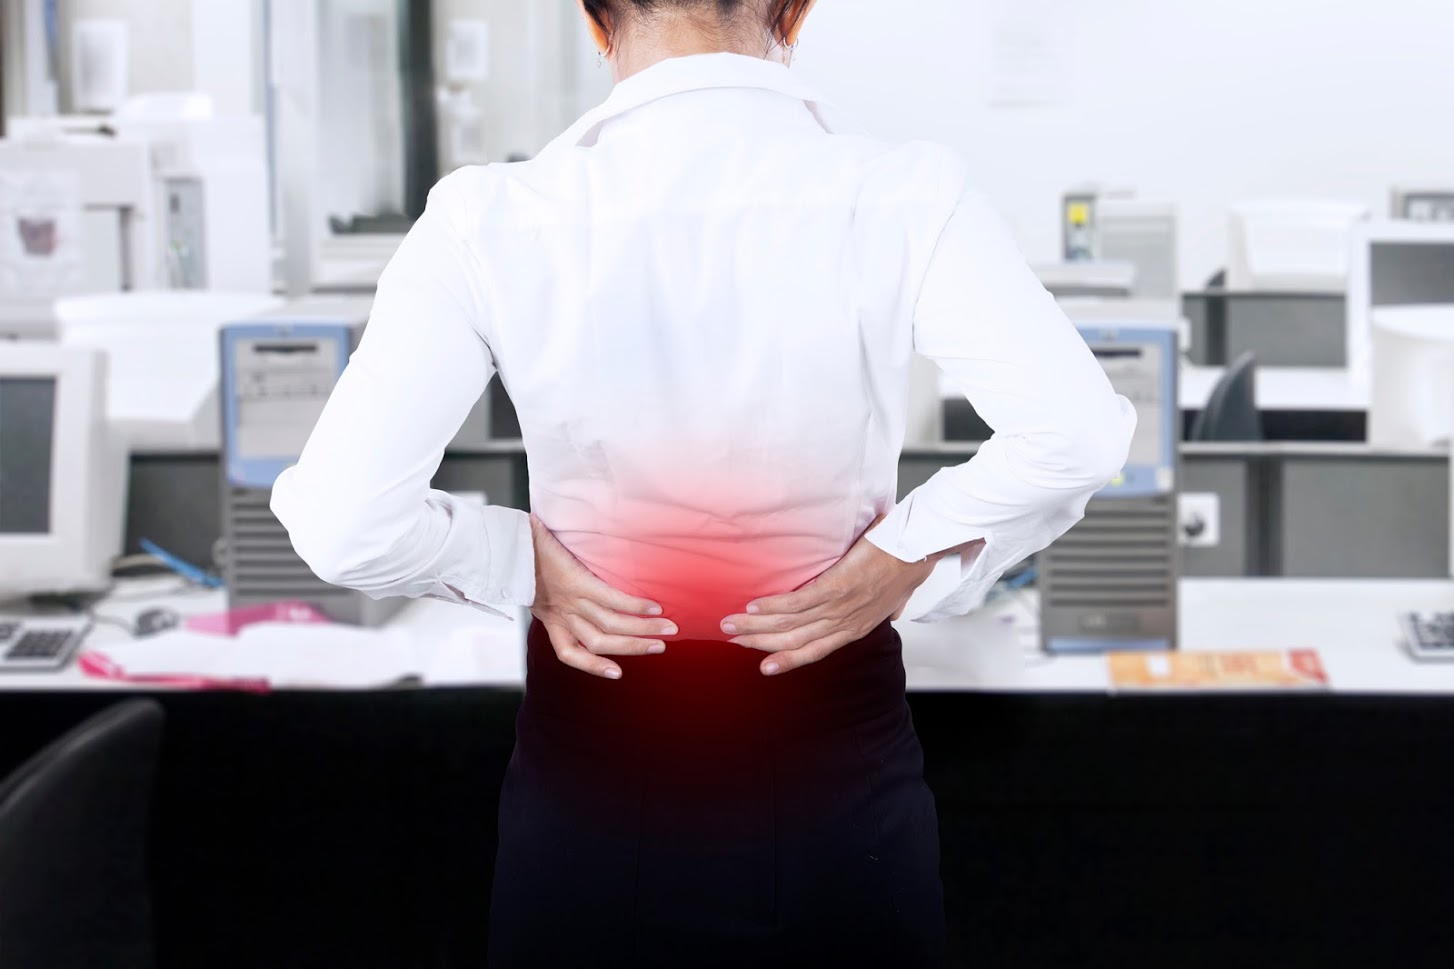 Suffering Chronic Lower Back Pain? Radiofrequency Ablation Could Help